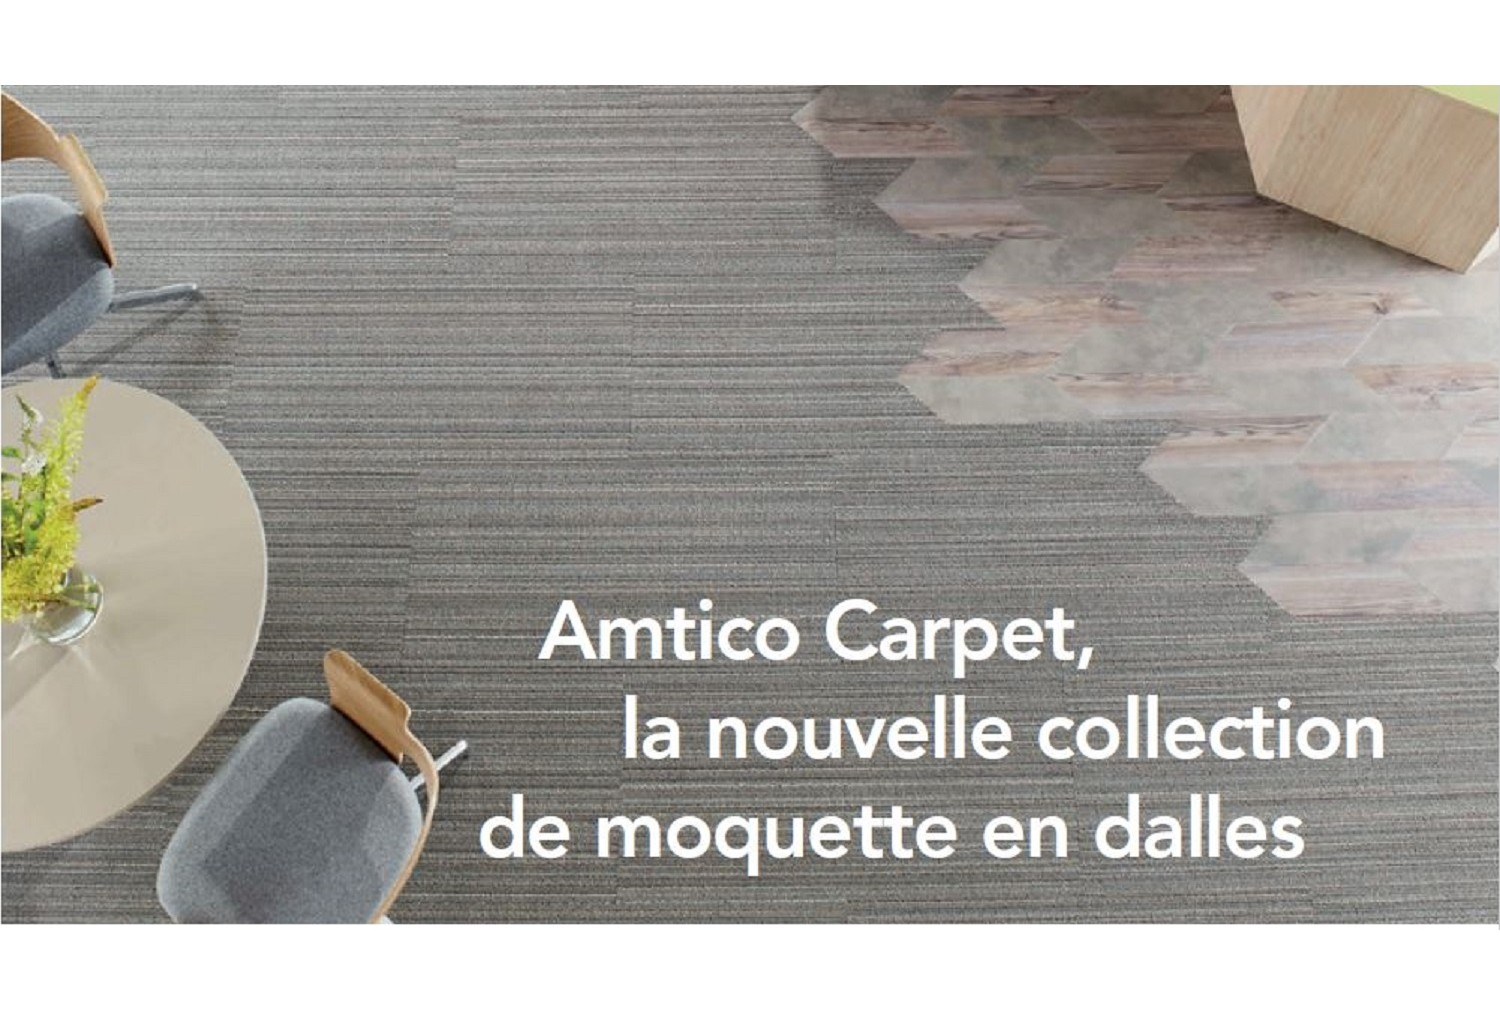 Amtico Carpet, la nouvelle collection de moquette en dalles